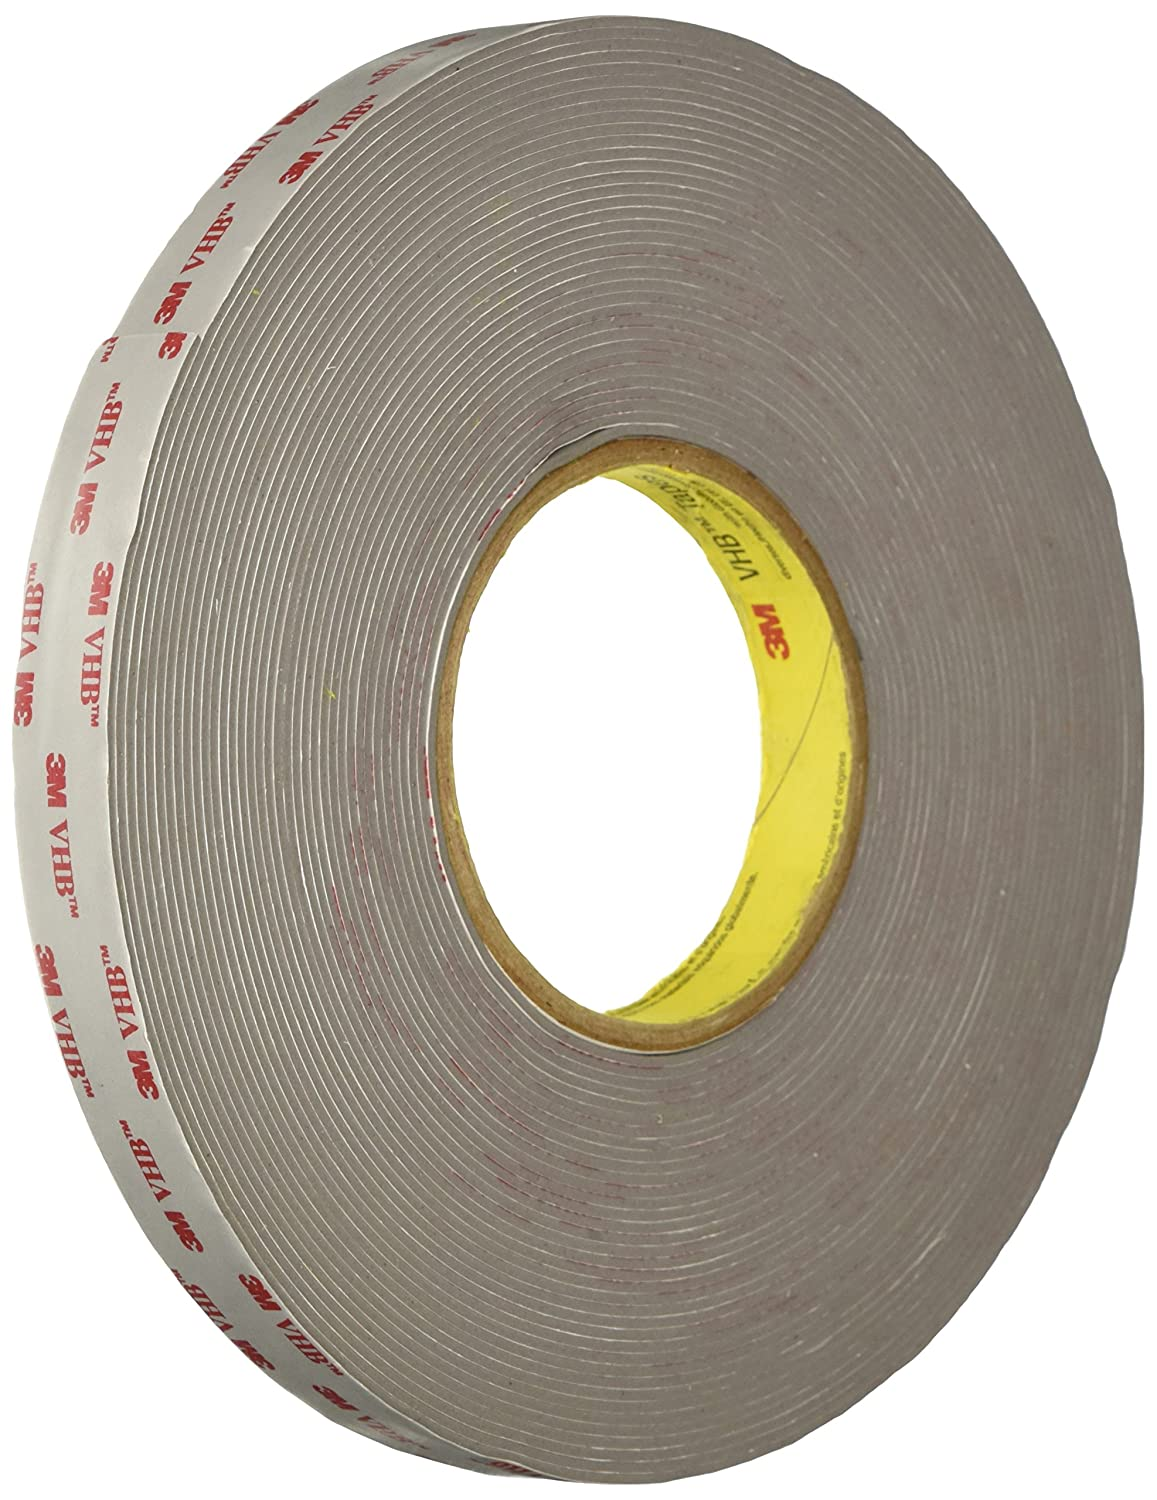 3M VHB Tape RP62 in Gray - 0.5 in. x 15 ft. Double Sided Tape Roll with Conformable Foam Core. Adhesive Tapes